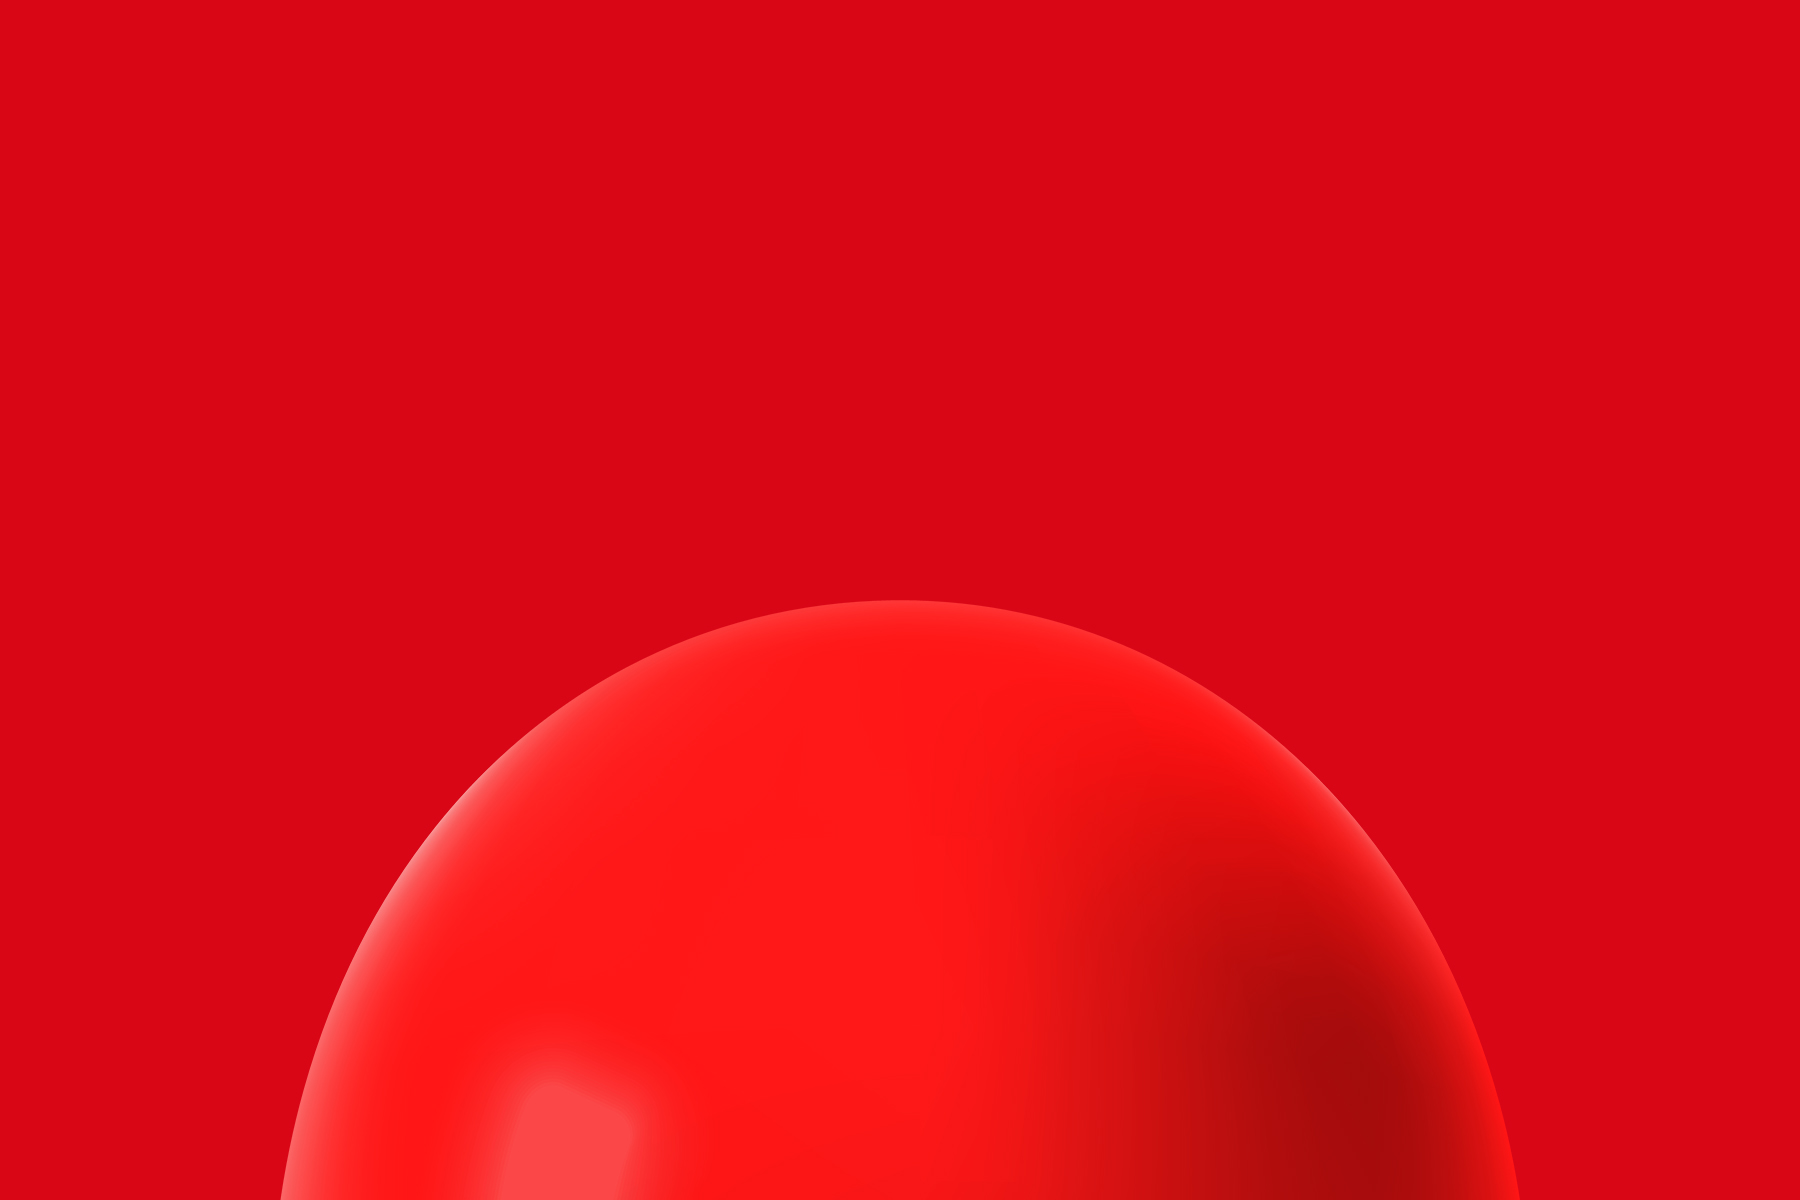 RED BALLOON is a multi-media agency based in New Orleans.